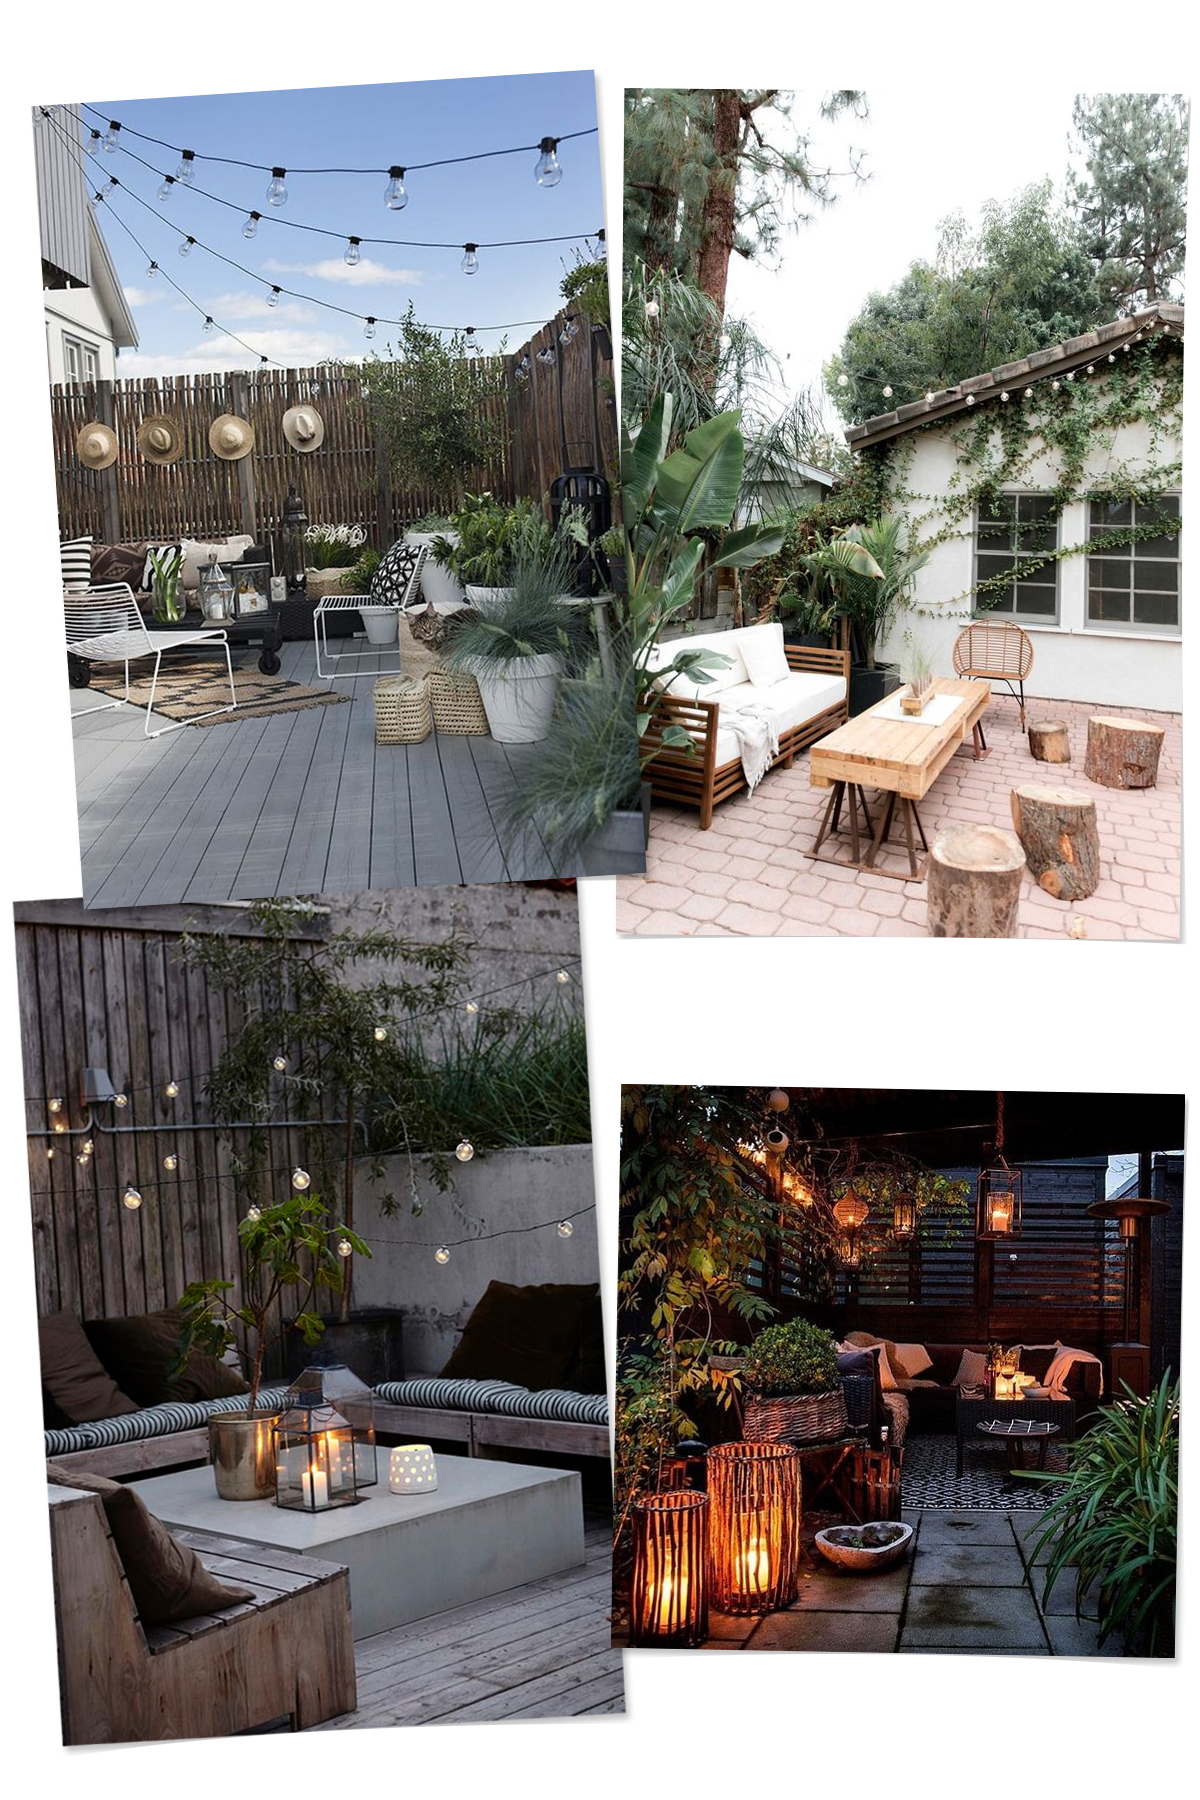 Inspiration - Simple Scandinavian Patios | Deuce Cities Henhouse